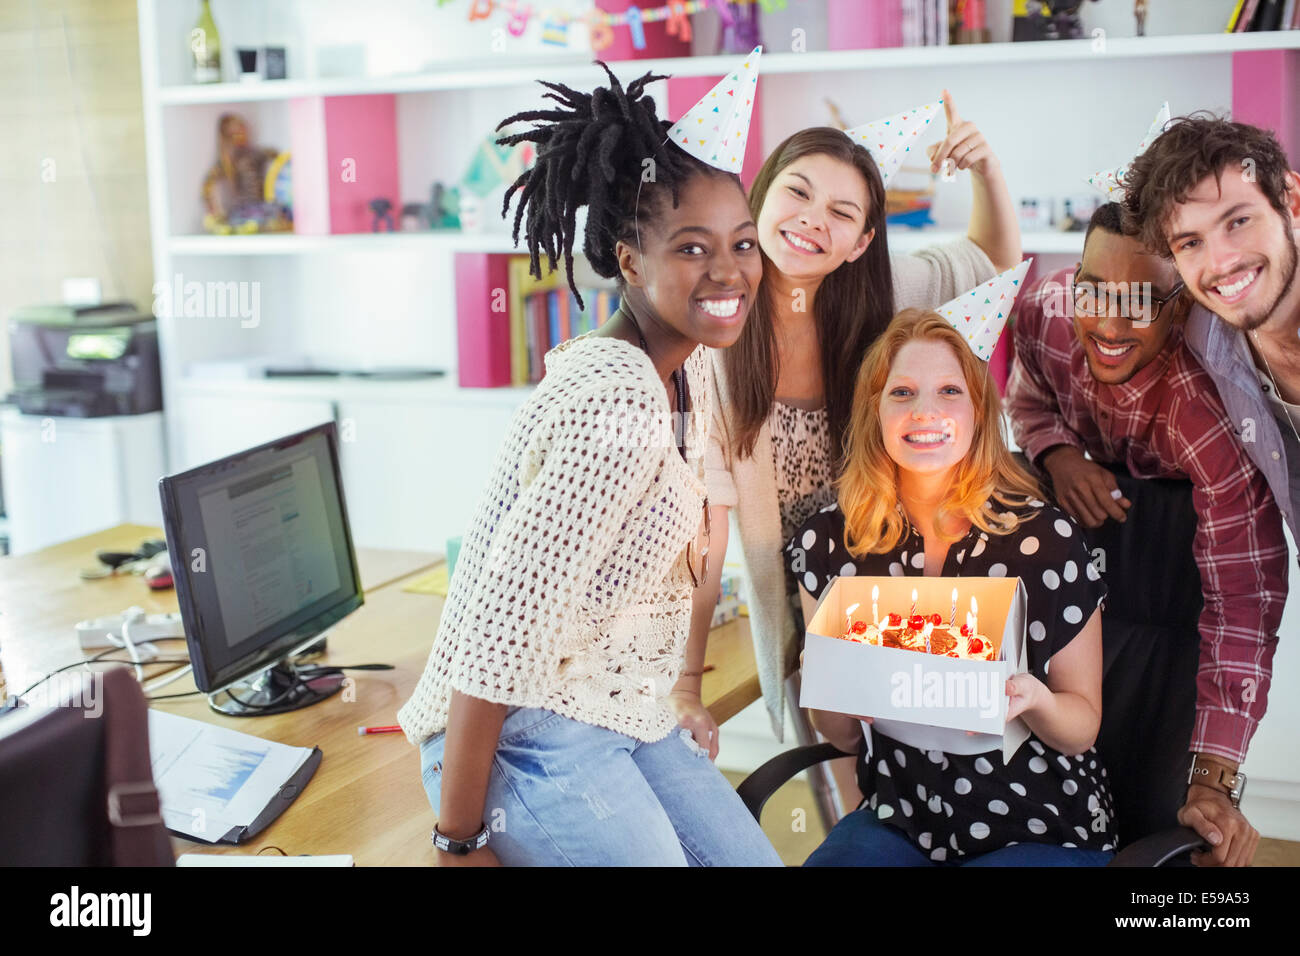 People celebrating birthday in office - Stock Image